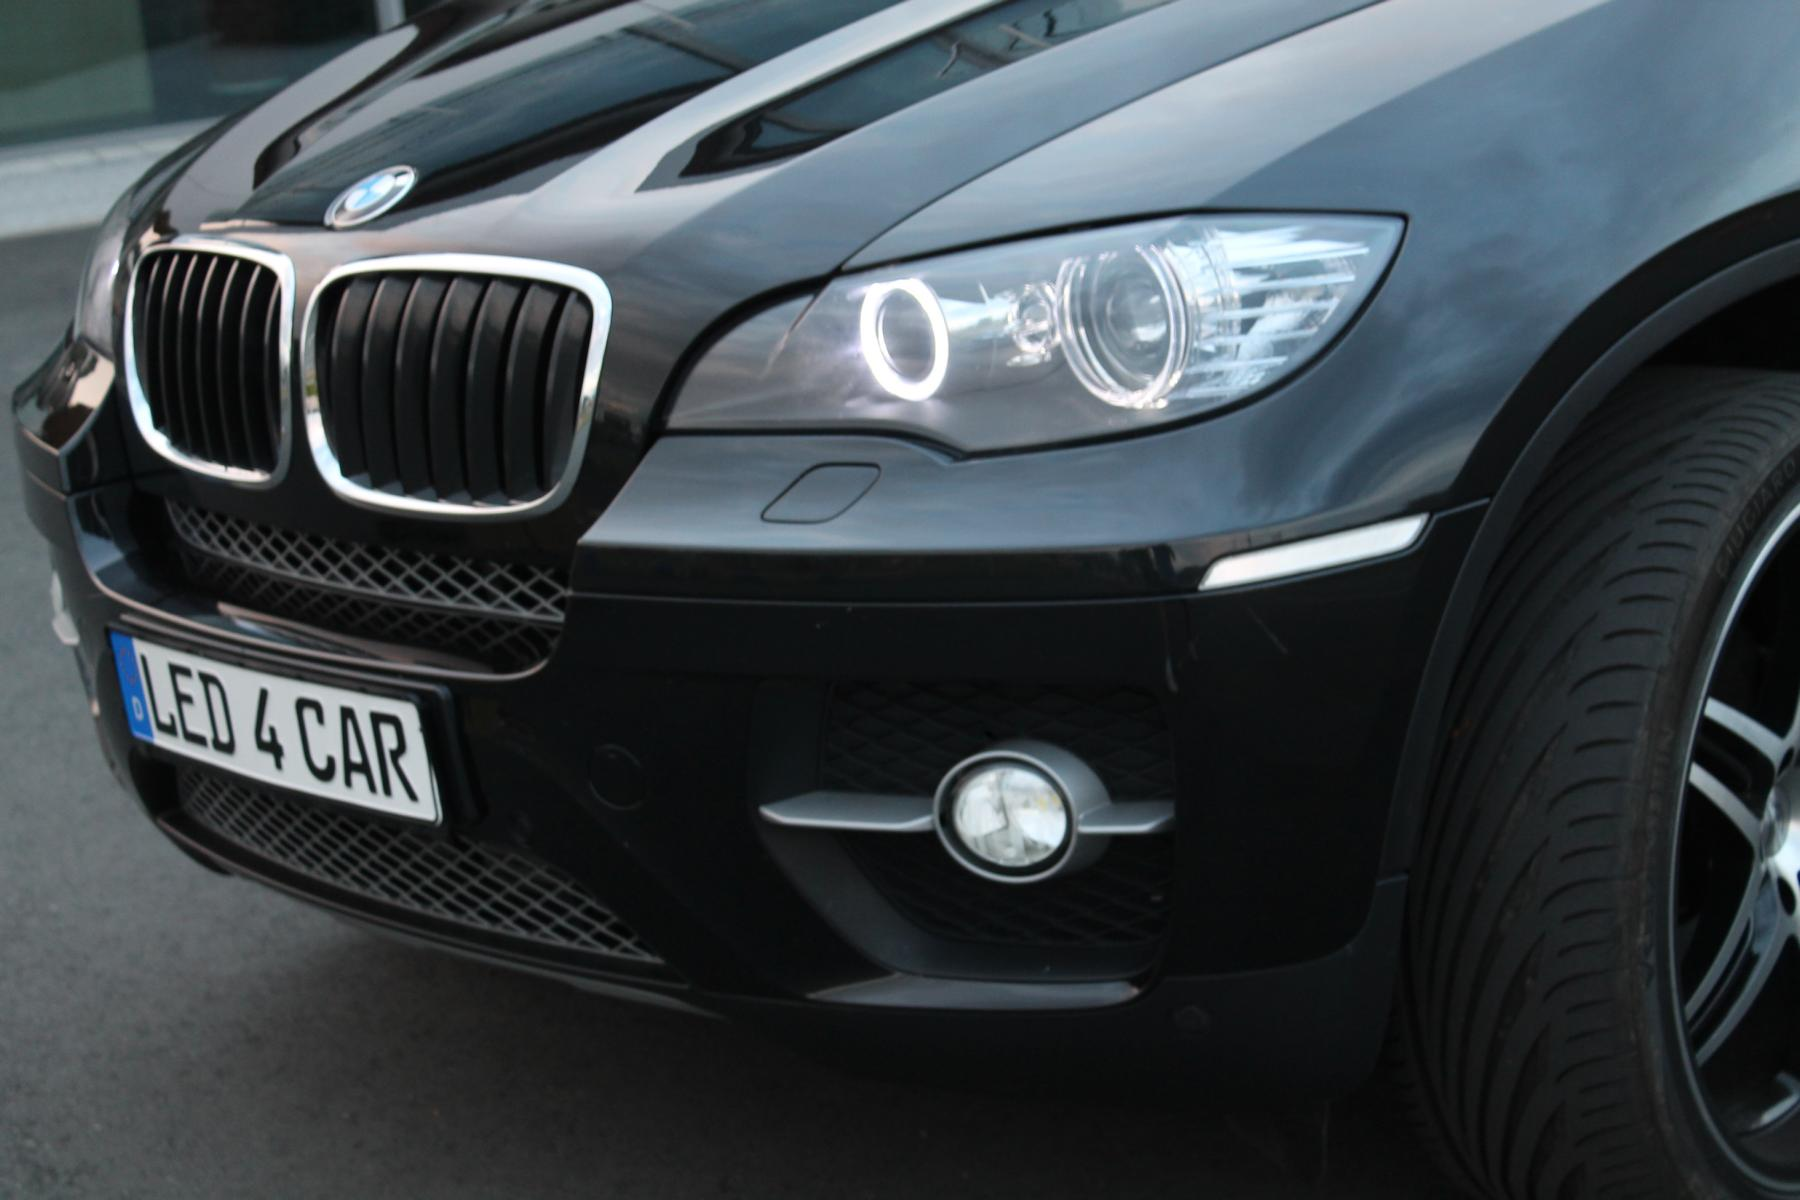 nieren k hlergrille f r bmw x5 e70 bj 2006 2013 in chrom schwarz. Black Bedroom Furniture Sets. Home Design Ideas